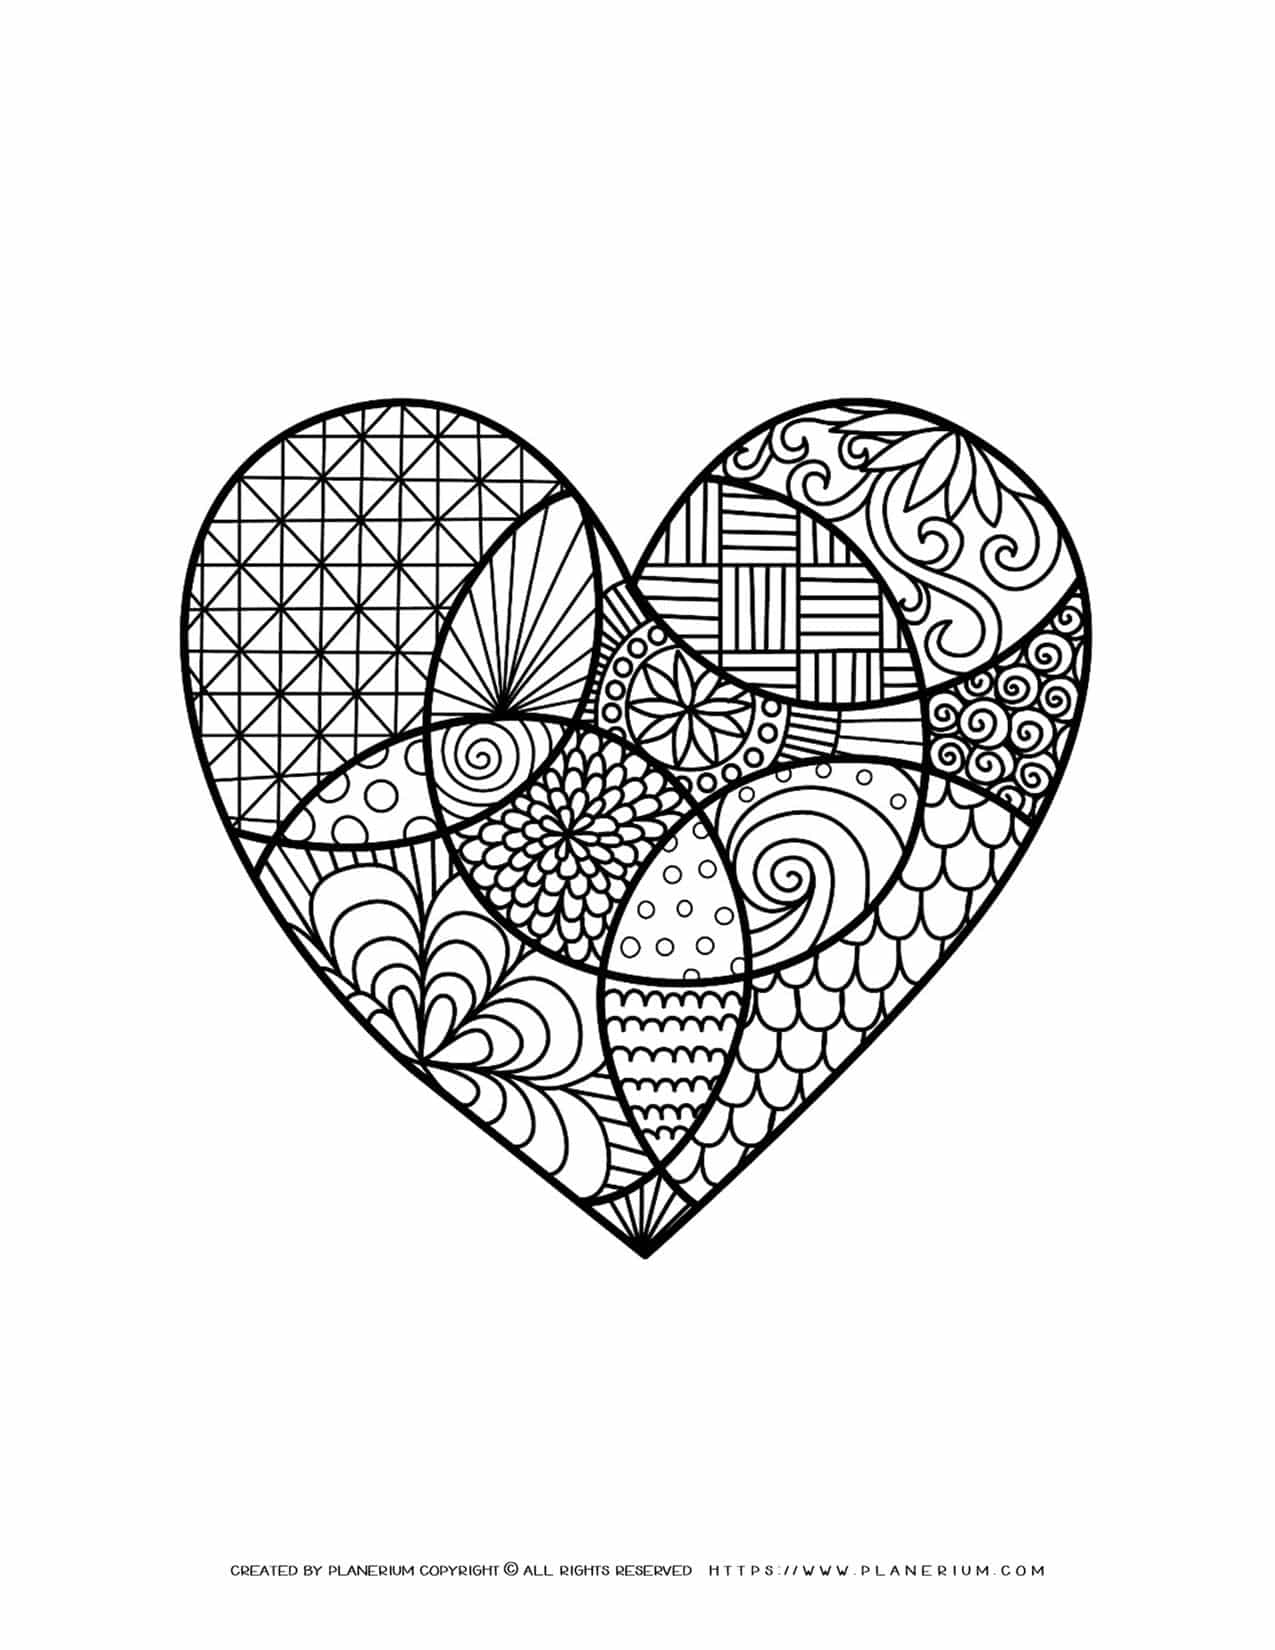 Valentines Day - Coloring Page - Decorative Heart   Planerium